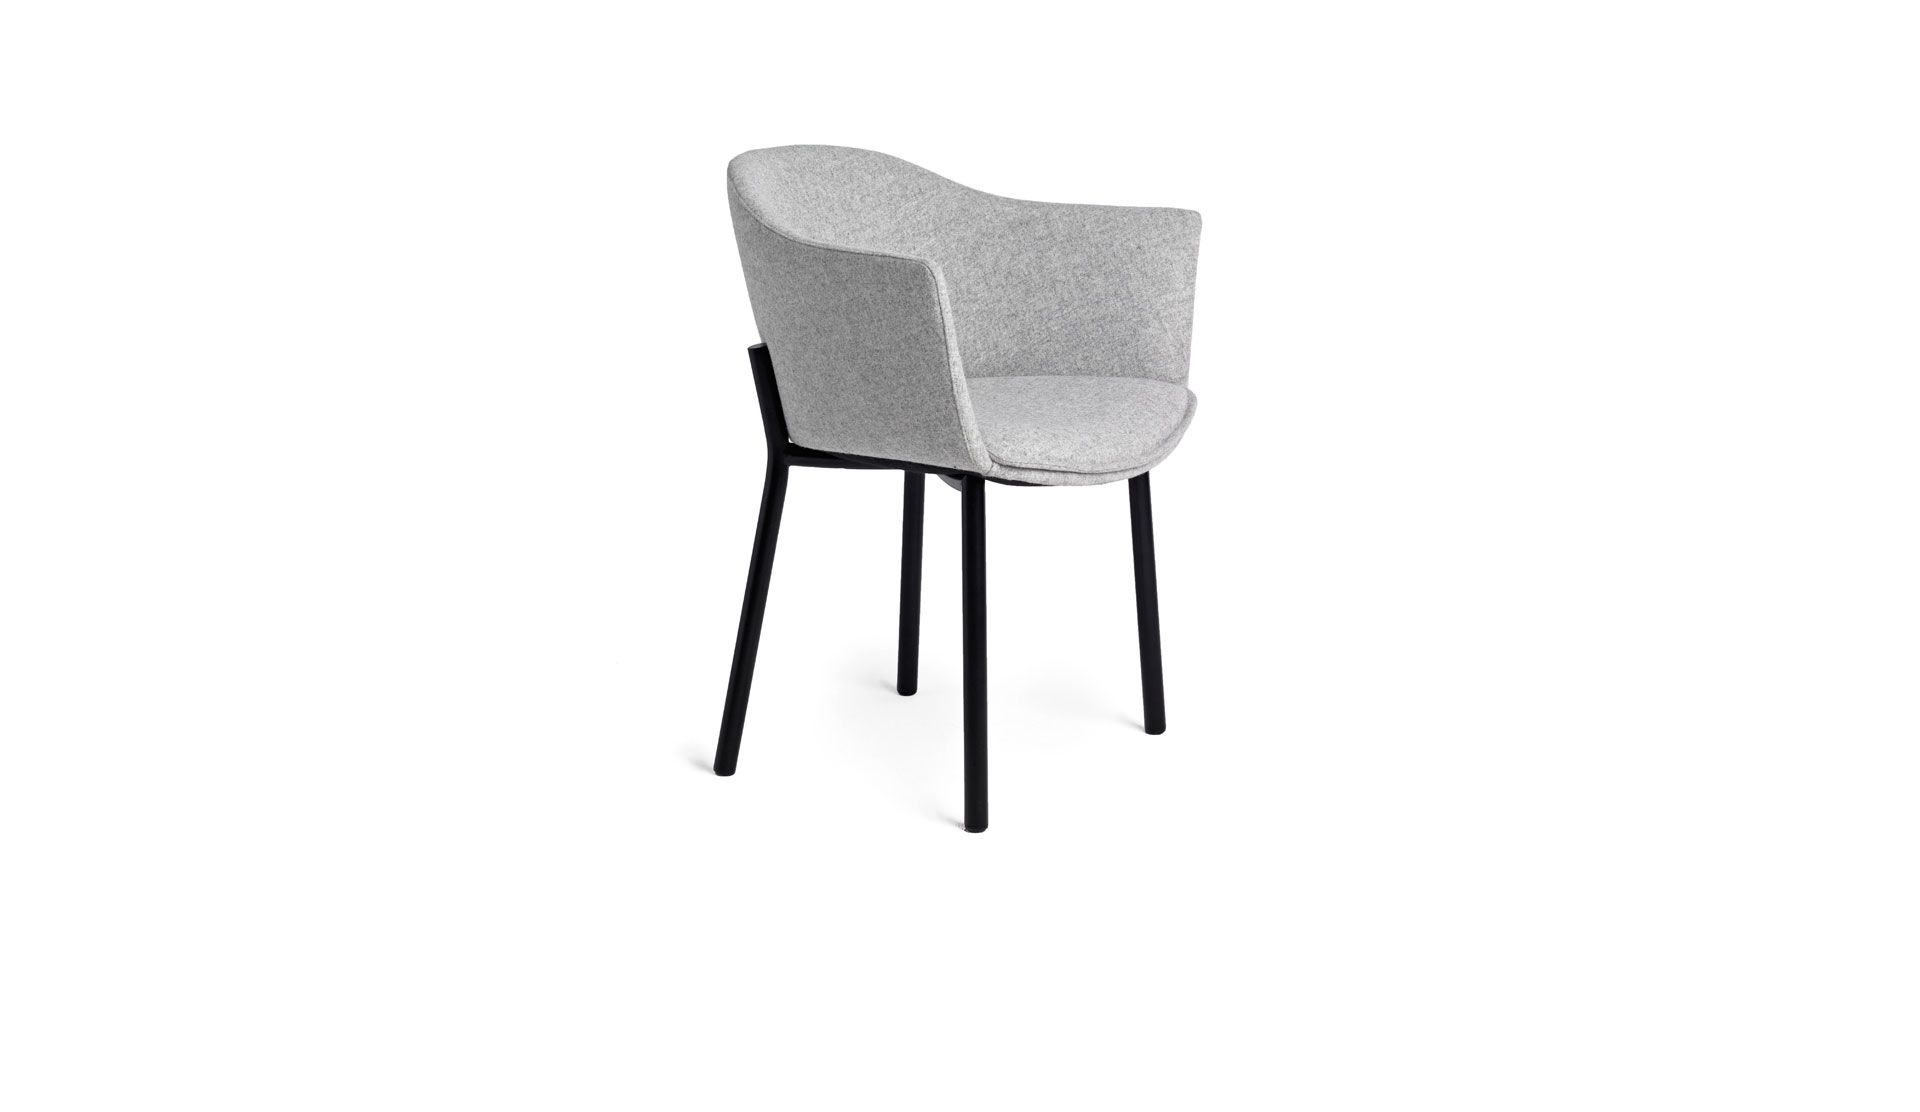 contemporary lounge chairs nz. felix chair by simon james for resident (new zealand) contemporary lounge chairs nz